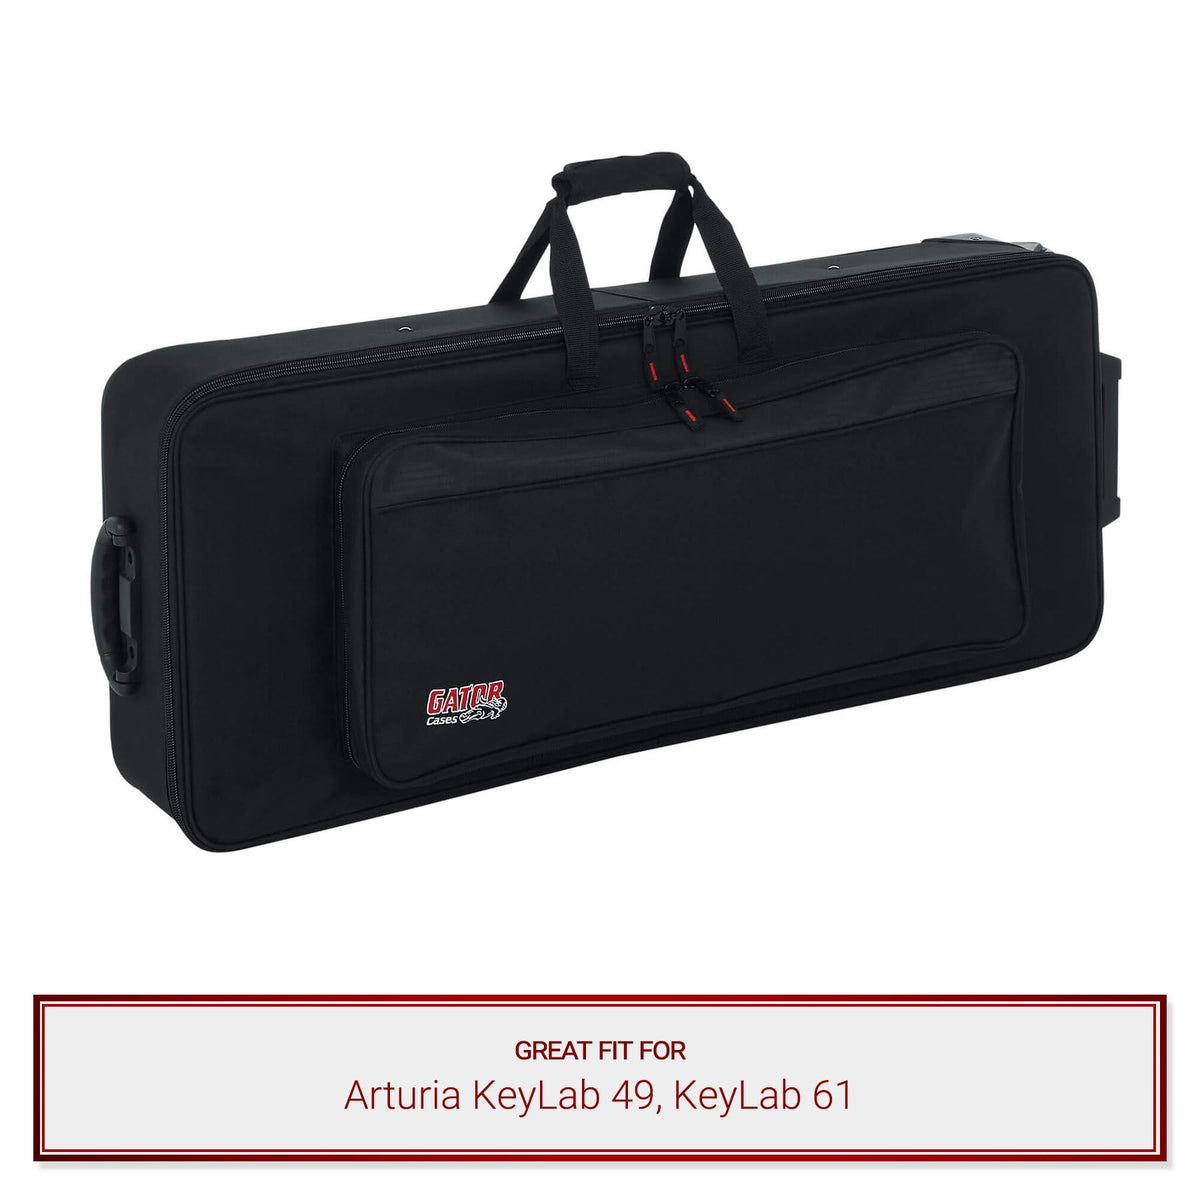 Gator Keyboard Case for Arturia KeyLab 49, KeyLab 61